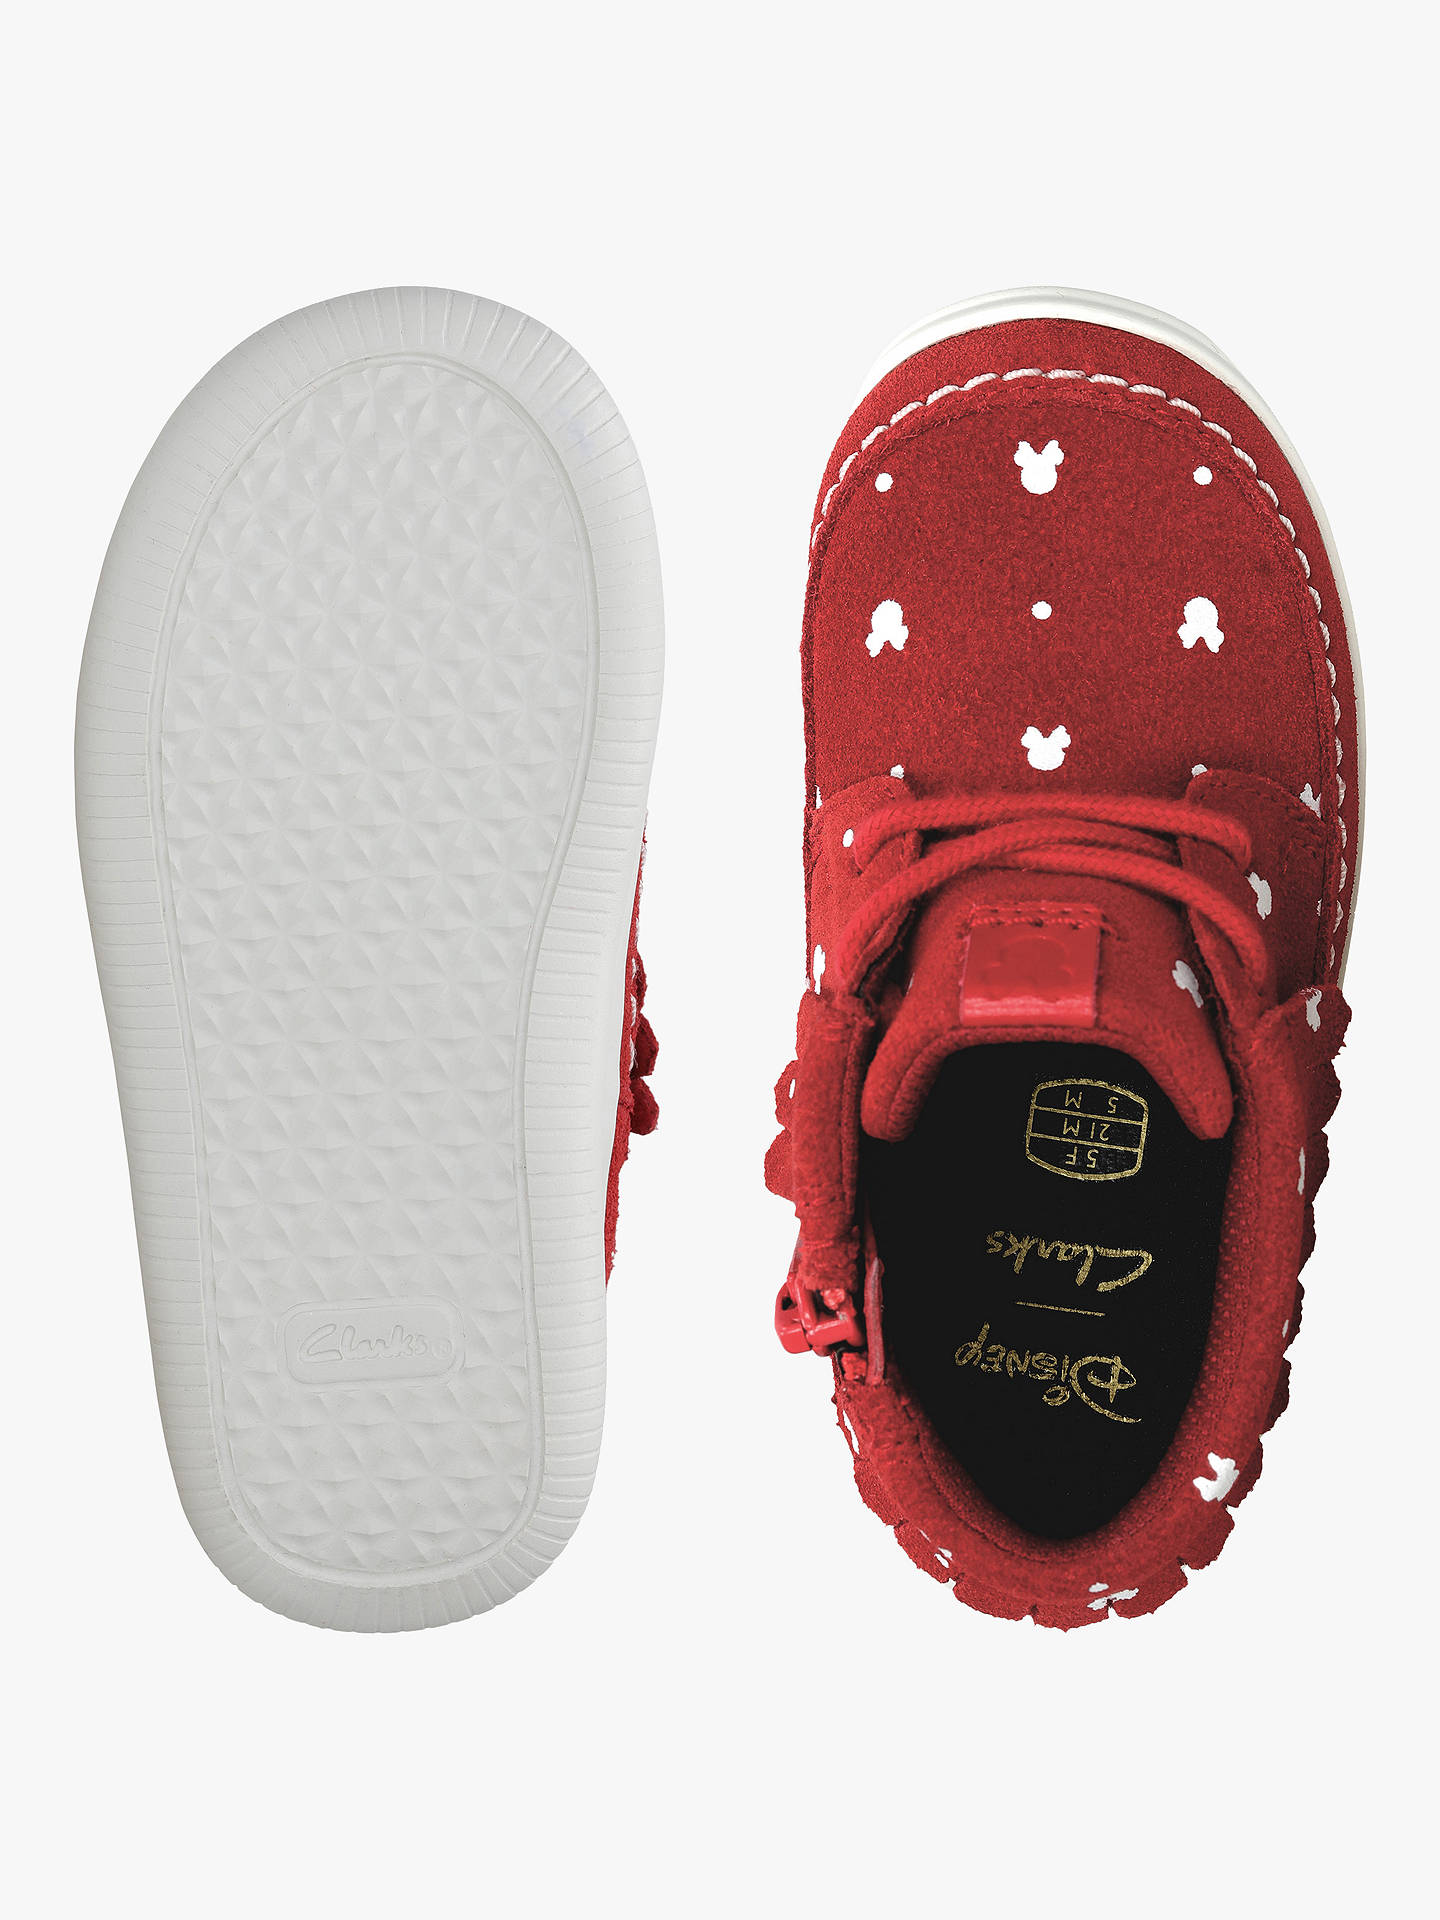 03fe1d5a31 ... Buy Clarks Children's Cloud Polka Disney Minnie Mouse Shoes, Red/White,  8.5G